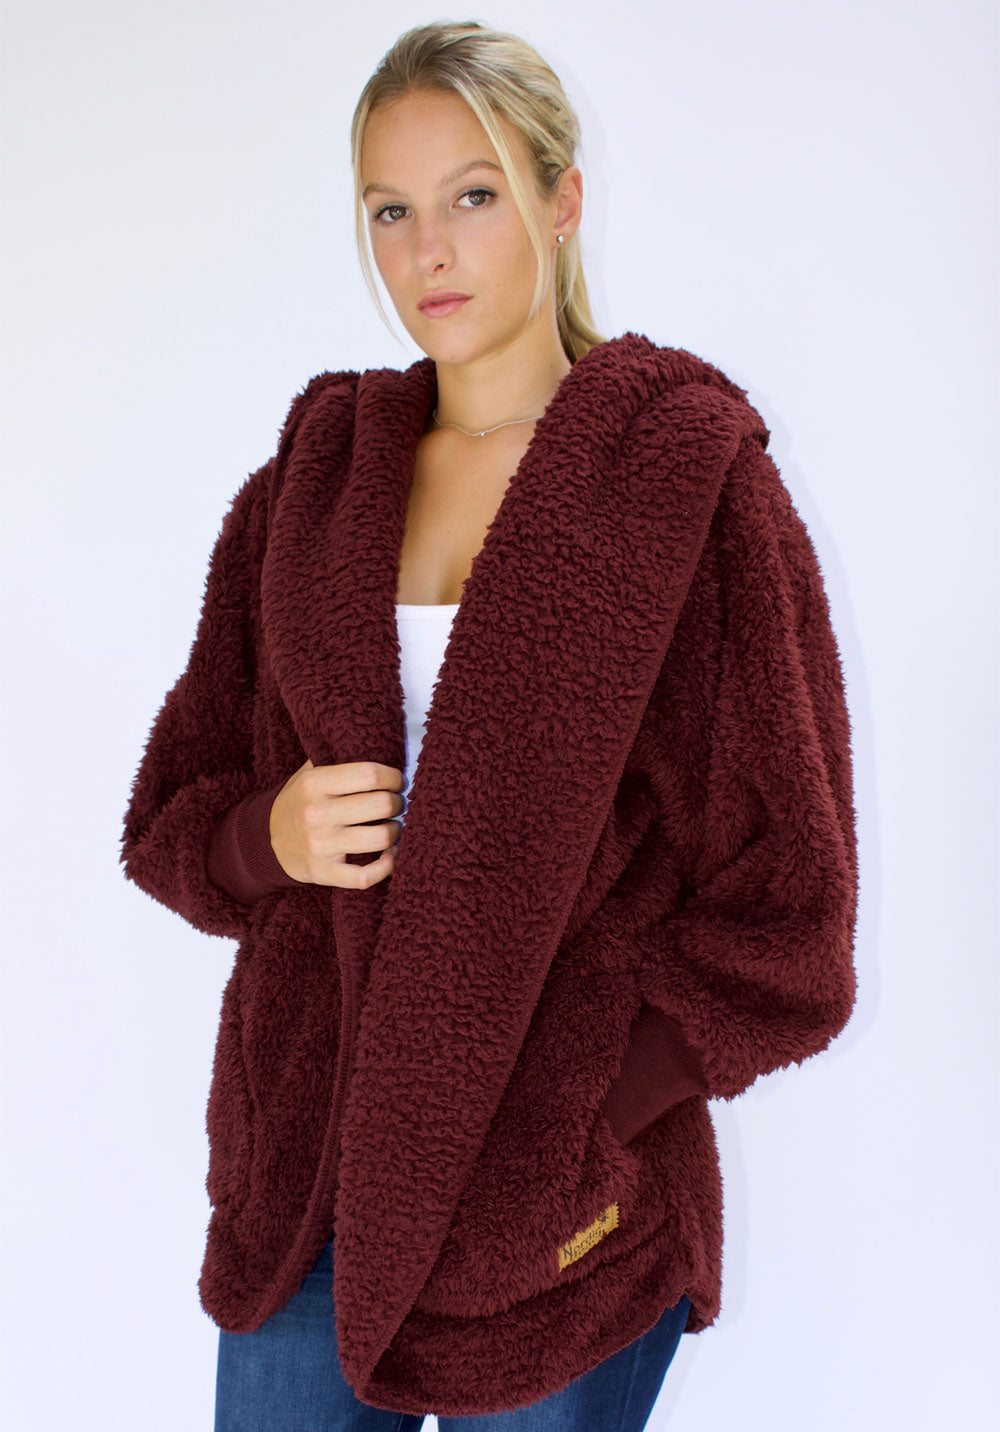 NORDIC BEACH WRAP - CHOCOLATE CHERRY